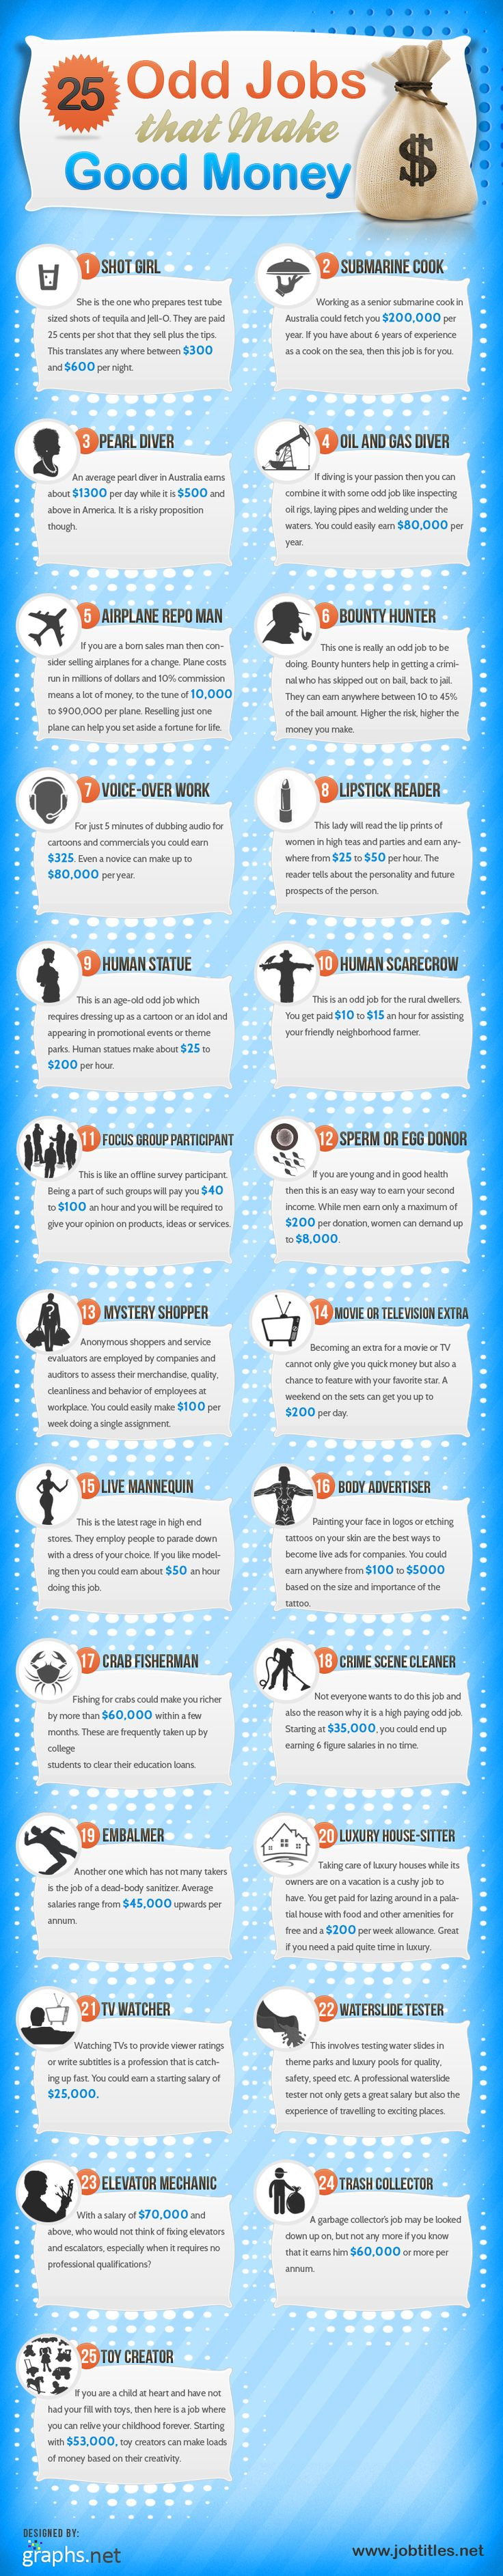 208 best images about careers internships on pinterest 25 odd jobs that make good money infographic xflitez Choice Image